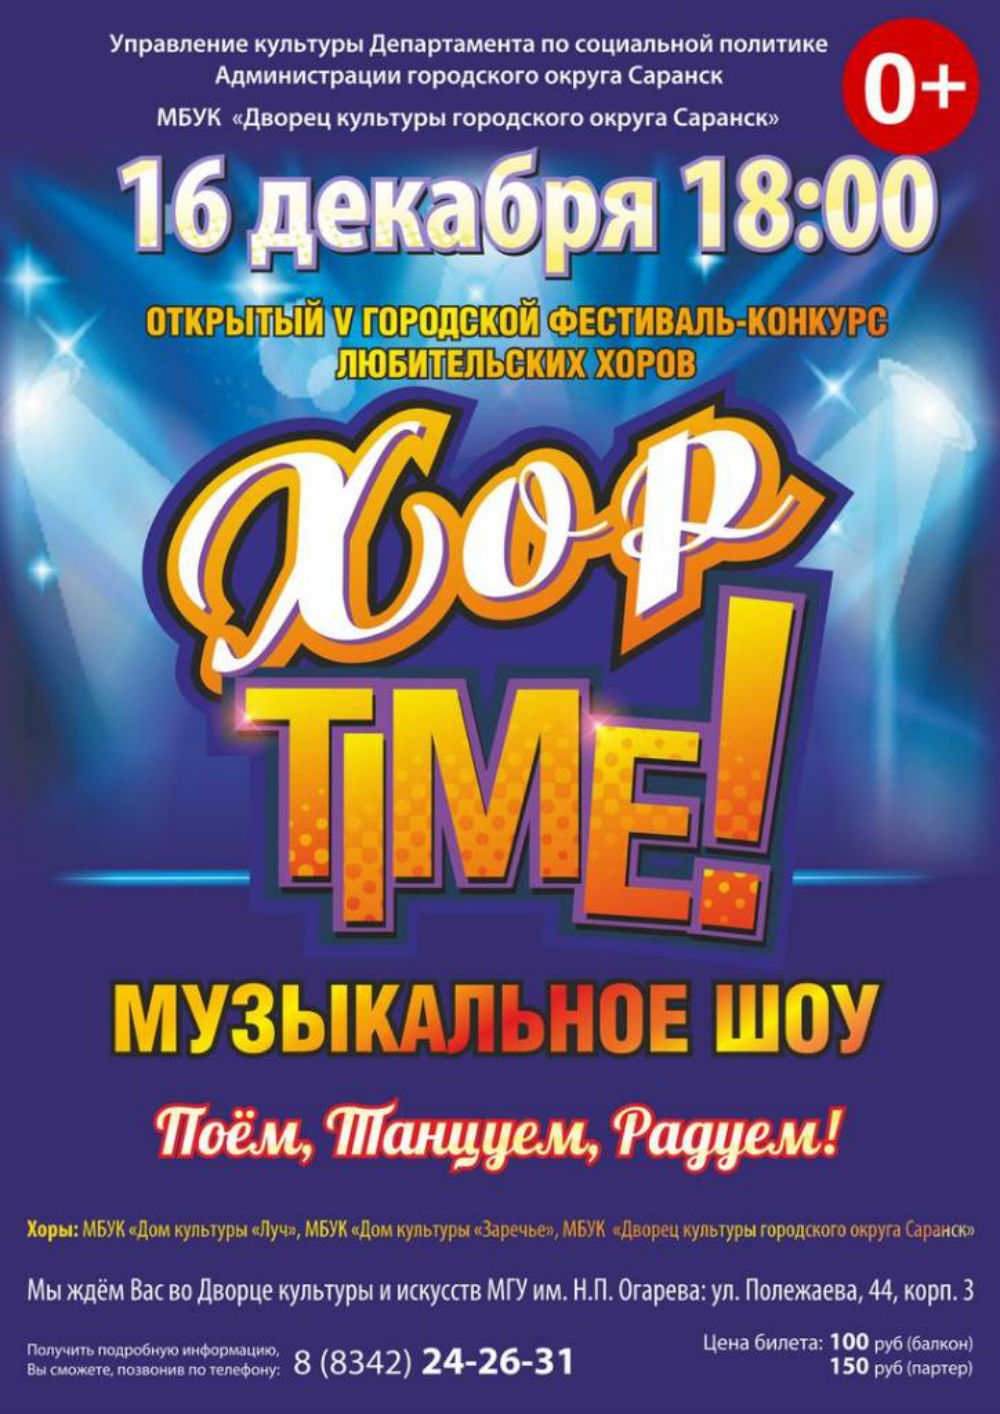 hor-time